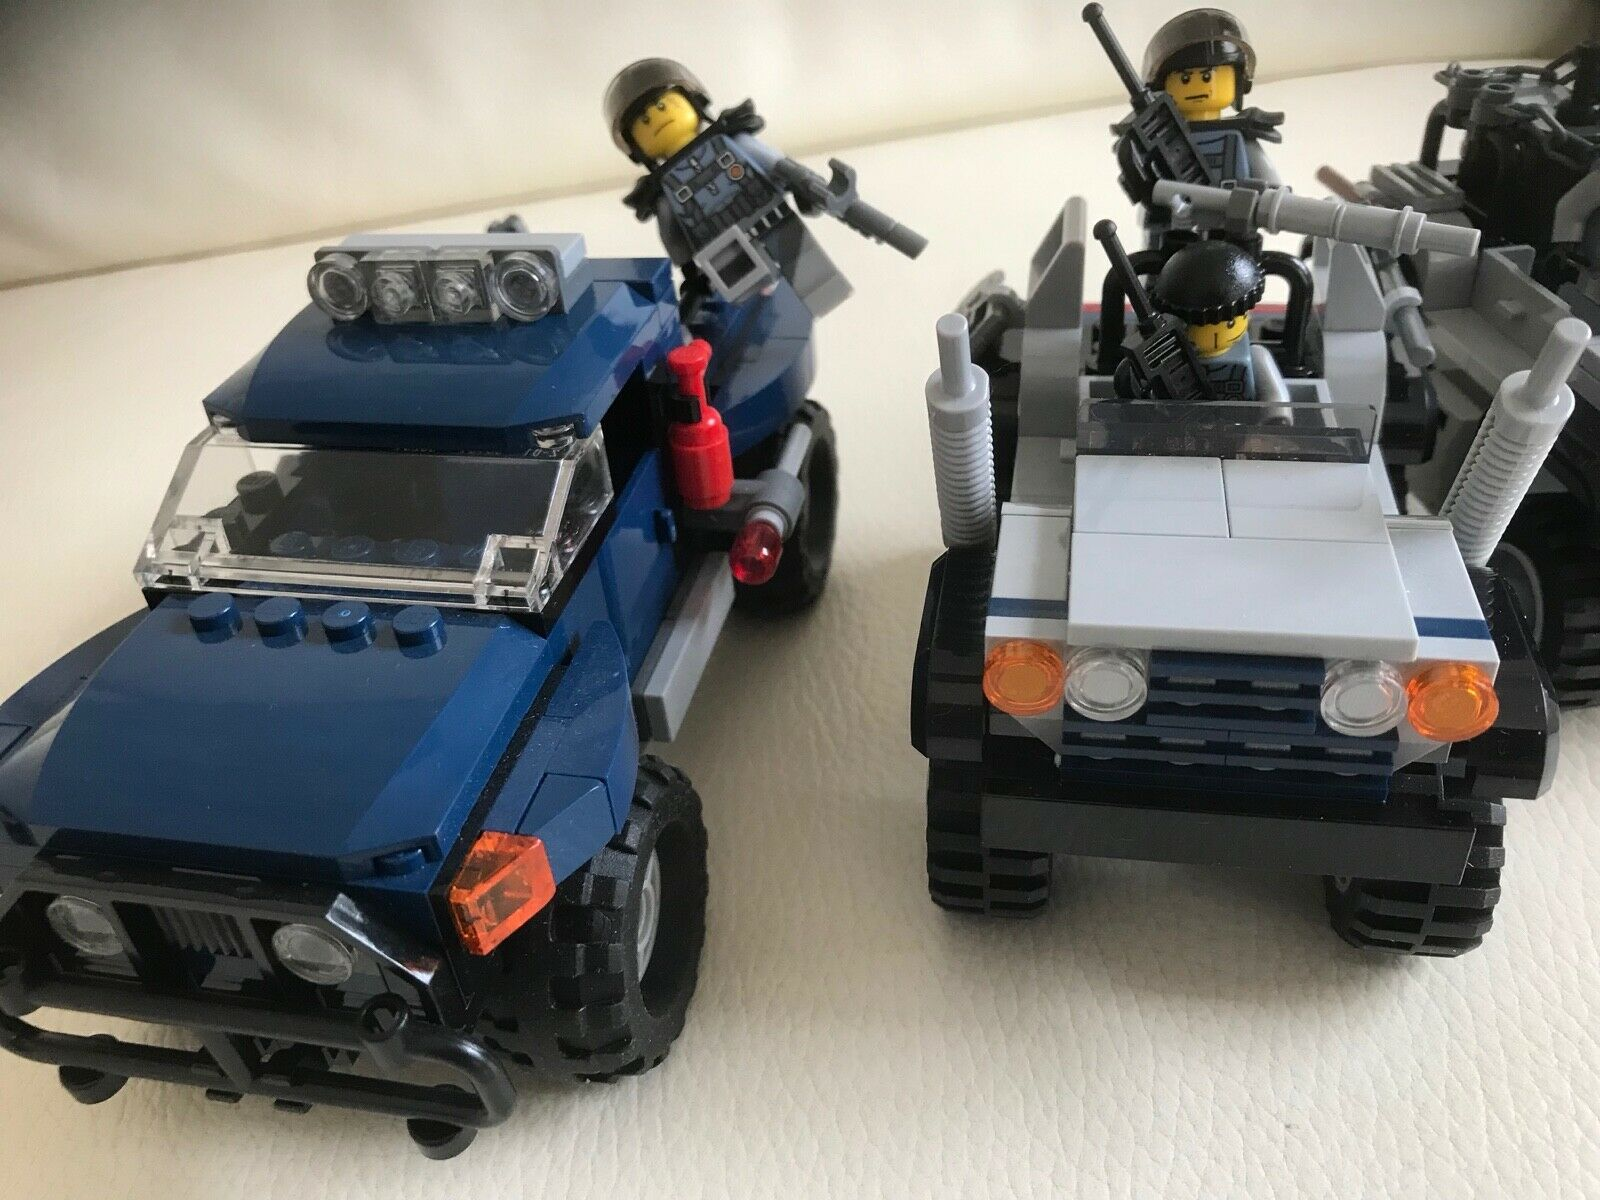 LEGO parts only SPECIAL FORCES 4 minifigures + + + 3 OFF ROAD CARS (6867 & 75926) u1 a6caff